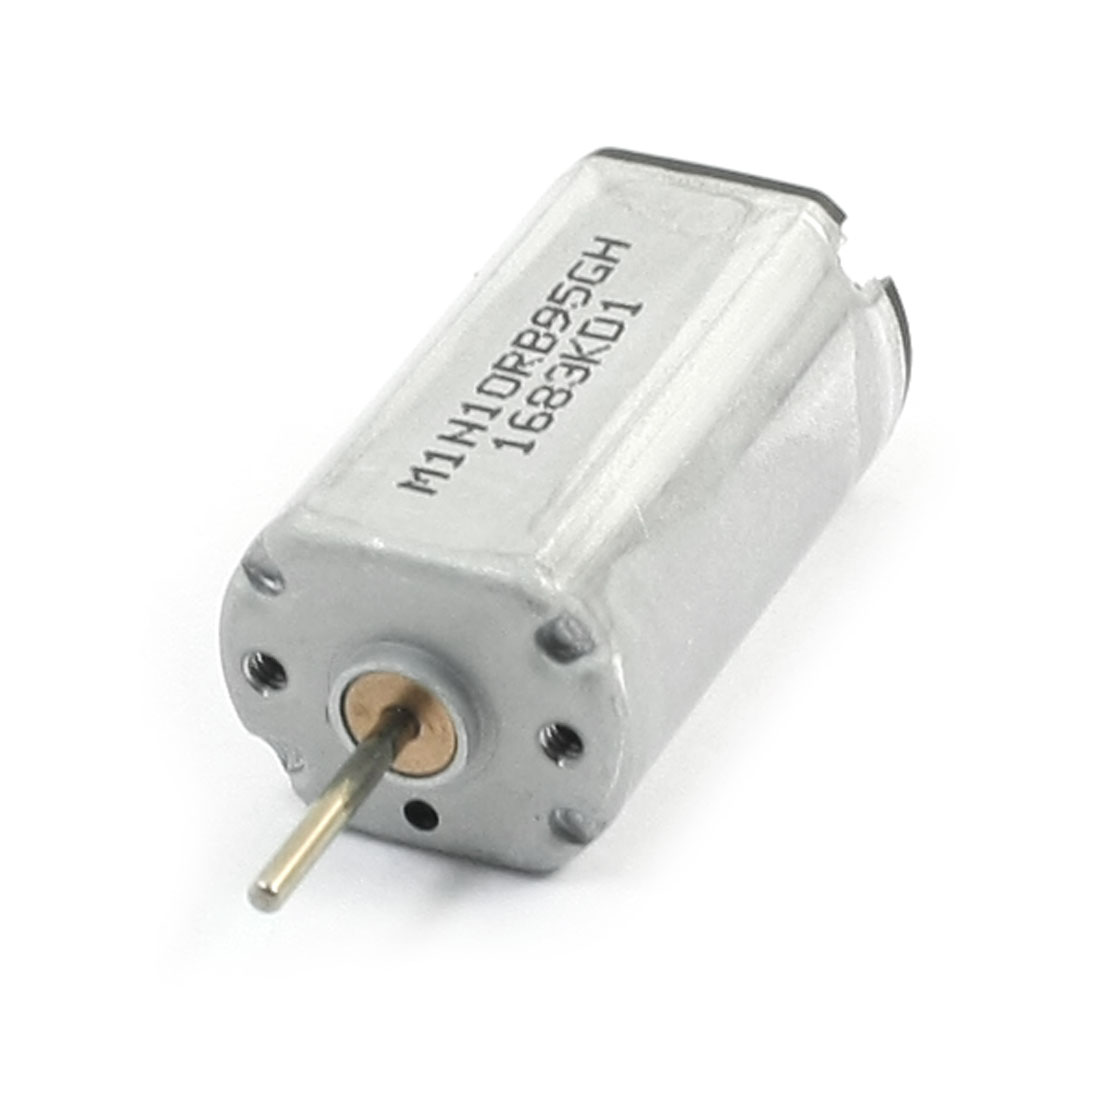 DIY Assmebly 5V 20mA 10277RPM Rotated Speed Powerful DC Motor